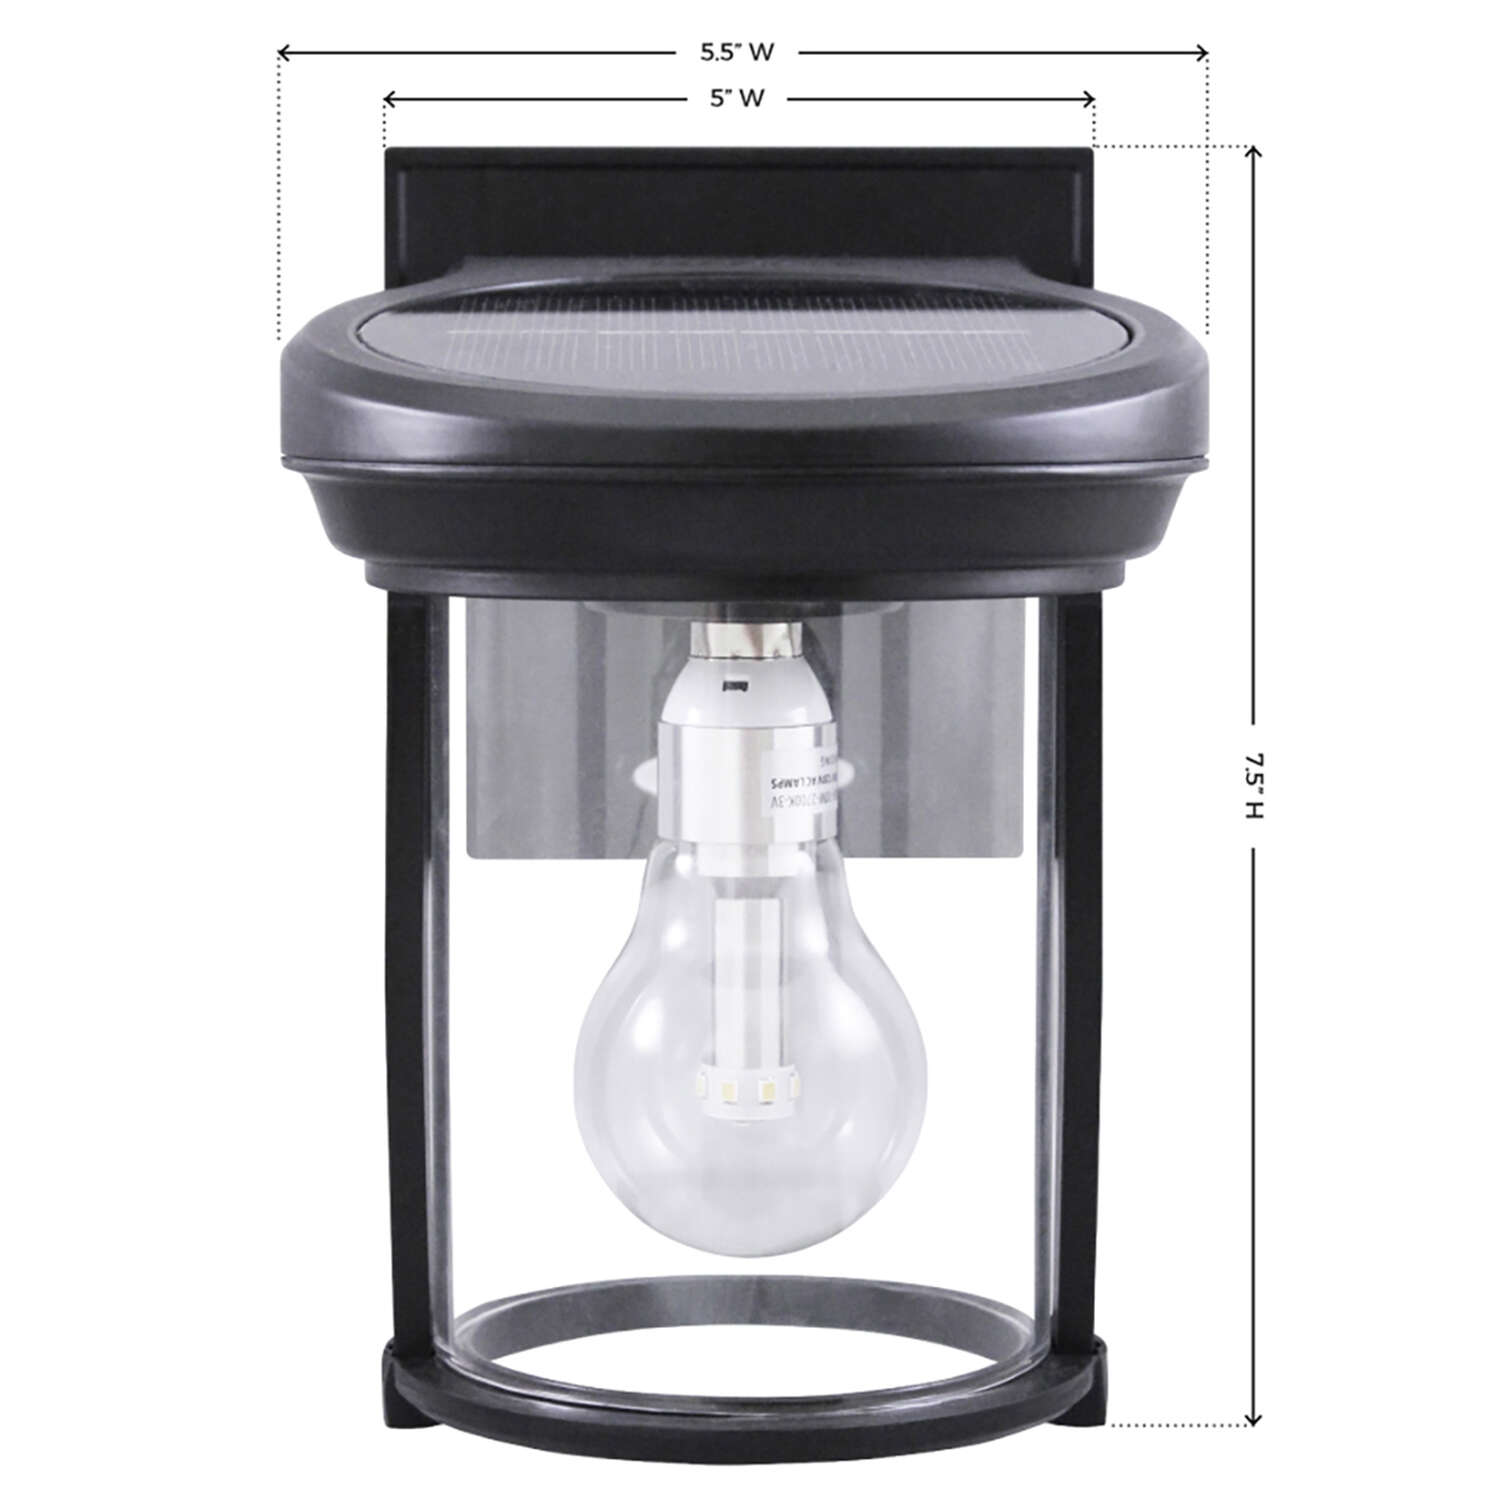 Gama Sonic  Solar Coach Lantern  Black  Dusk to Dawn  LED  Wall Lantern  Solar Powered